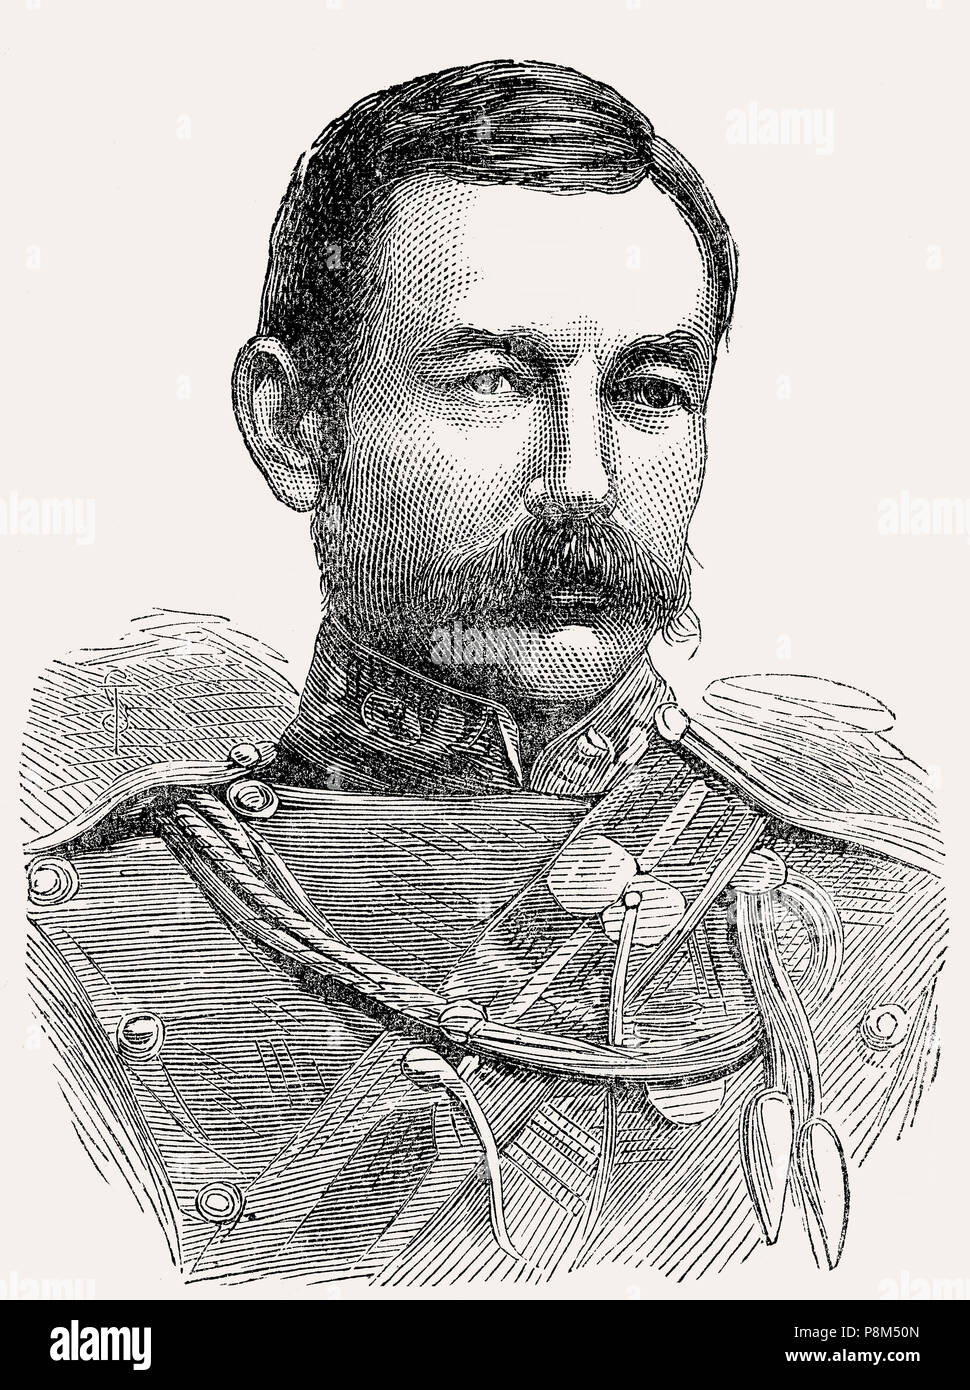 Lieutenant-General Sir Drury Curzon Drury-Lowe, 1830 – 1908, a British army officer, From British Battles on Land and Sea, by James Grant - Stock Image